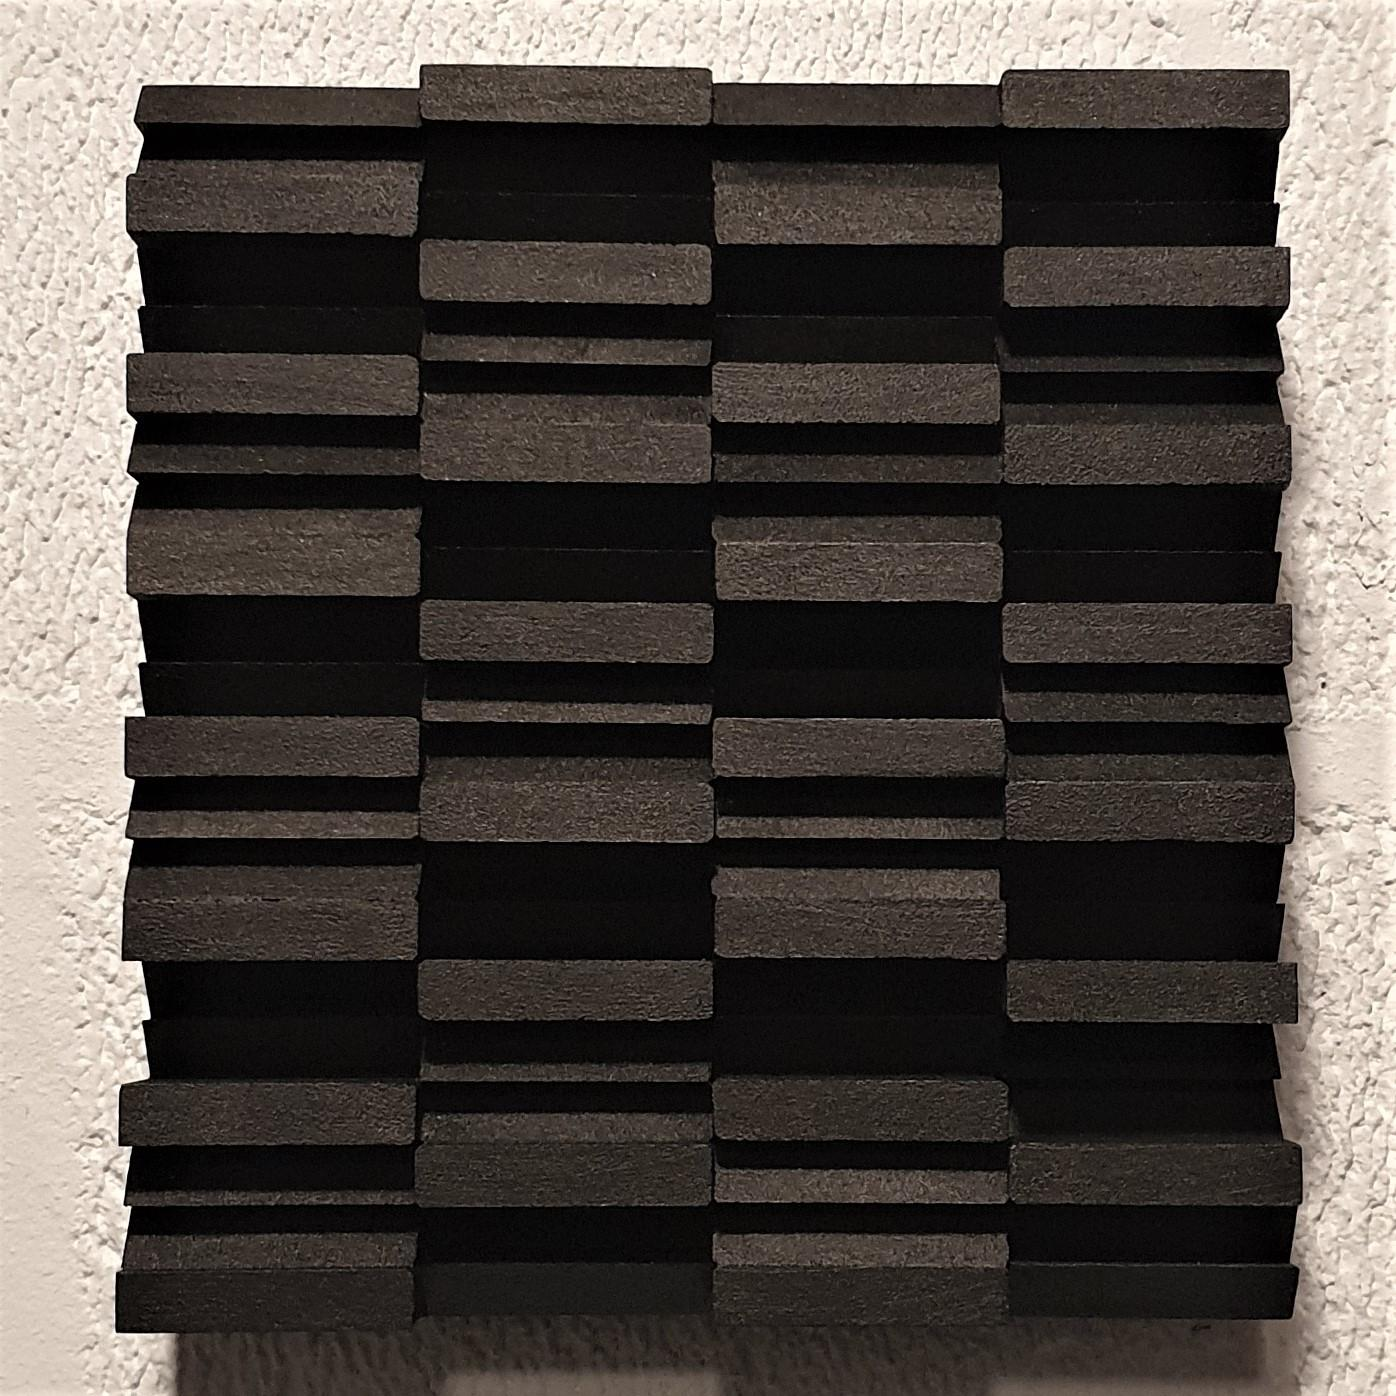 Intervalle II 11/25 - black grey contemporary modern sculpture painting relief